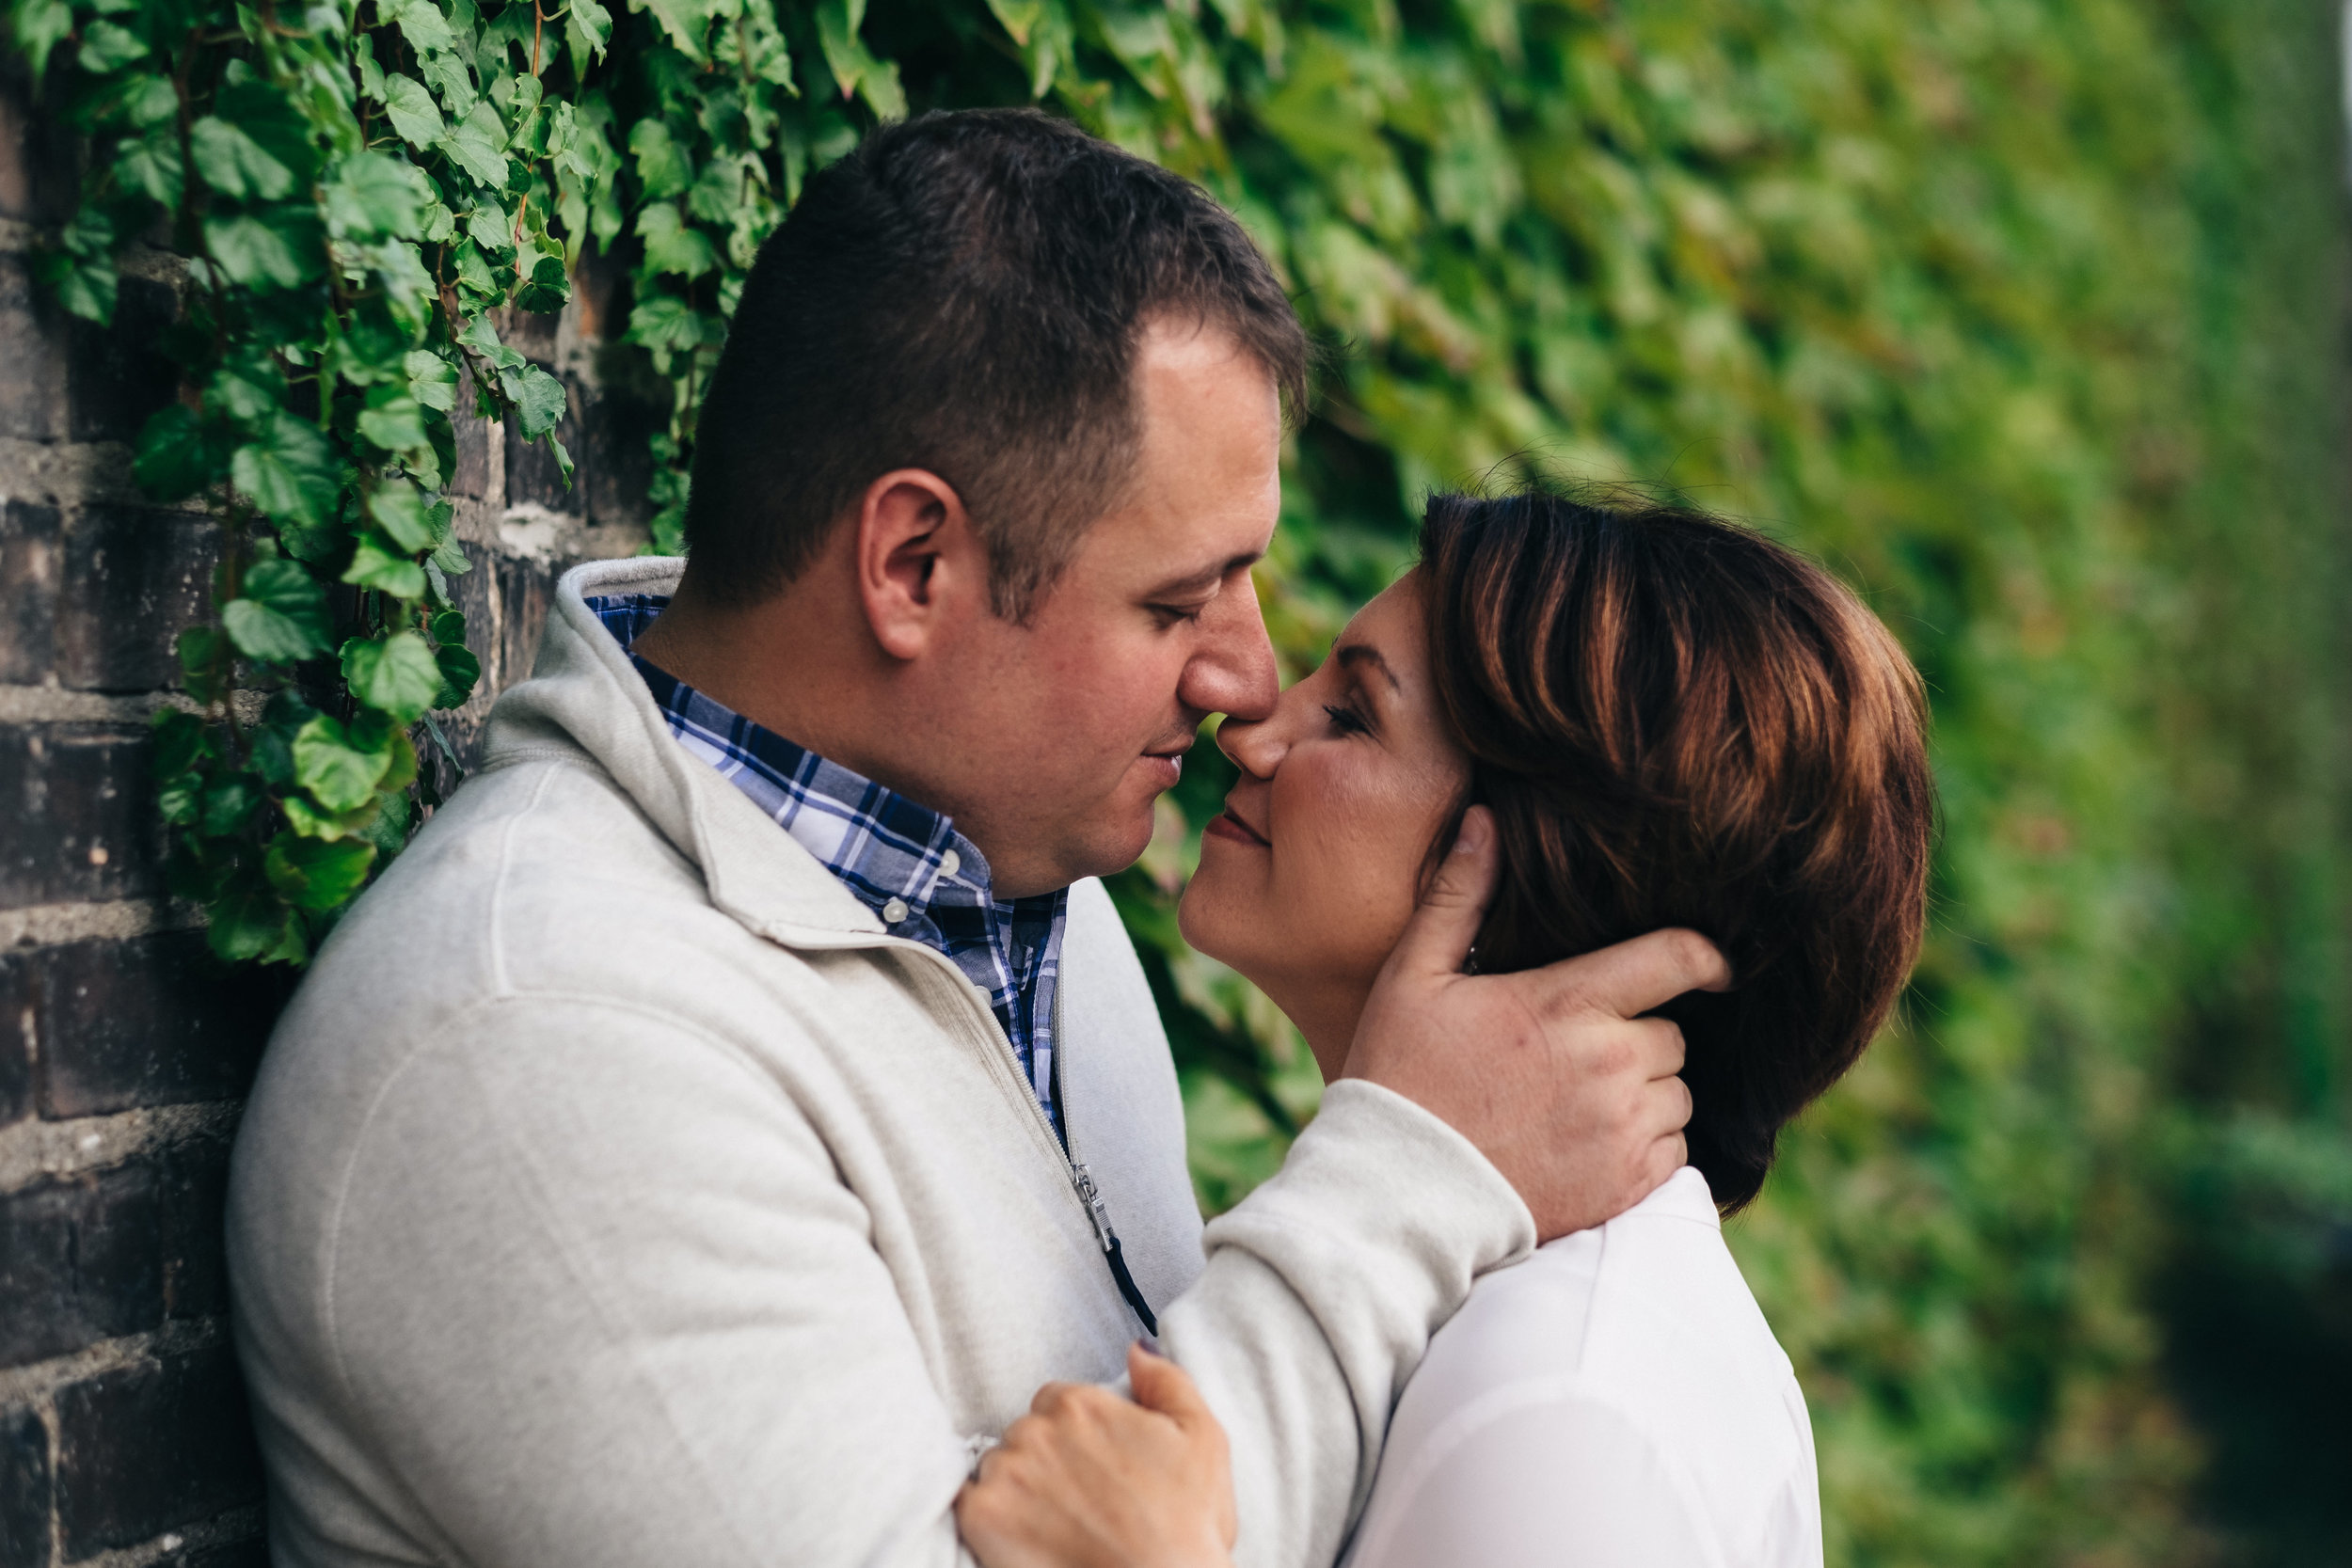 Engagement session in downtown Toledo in front of greenery wall.